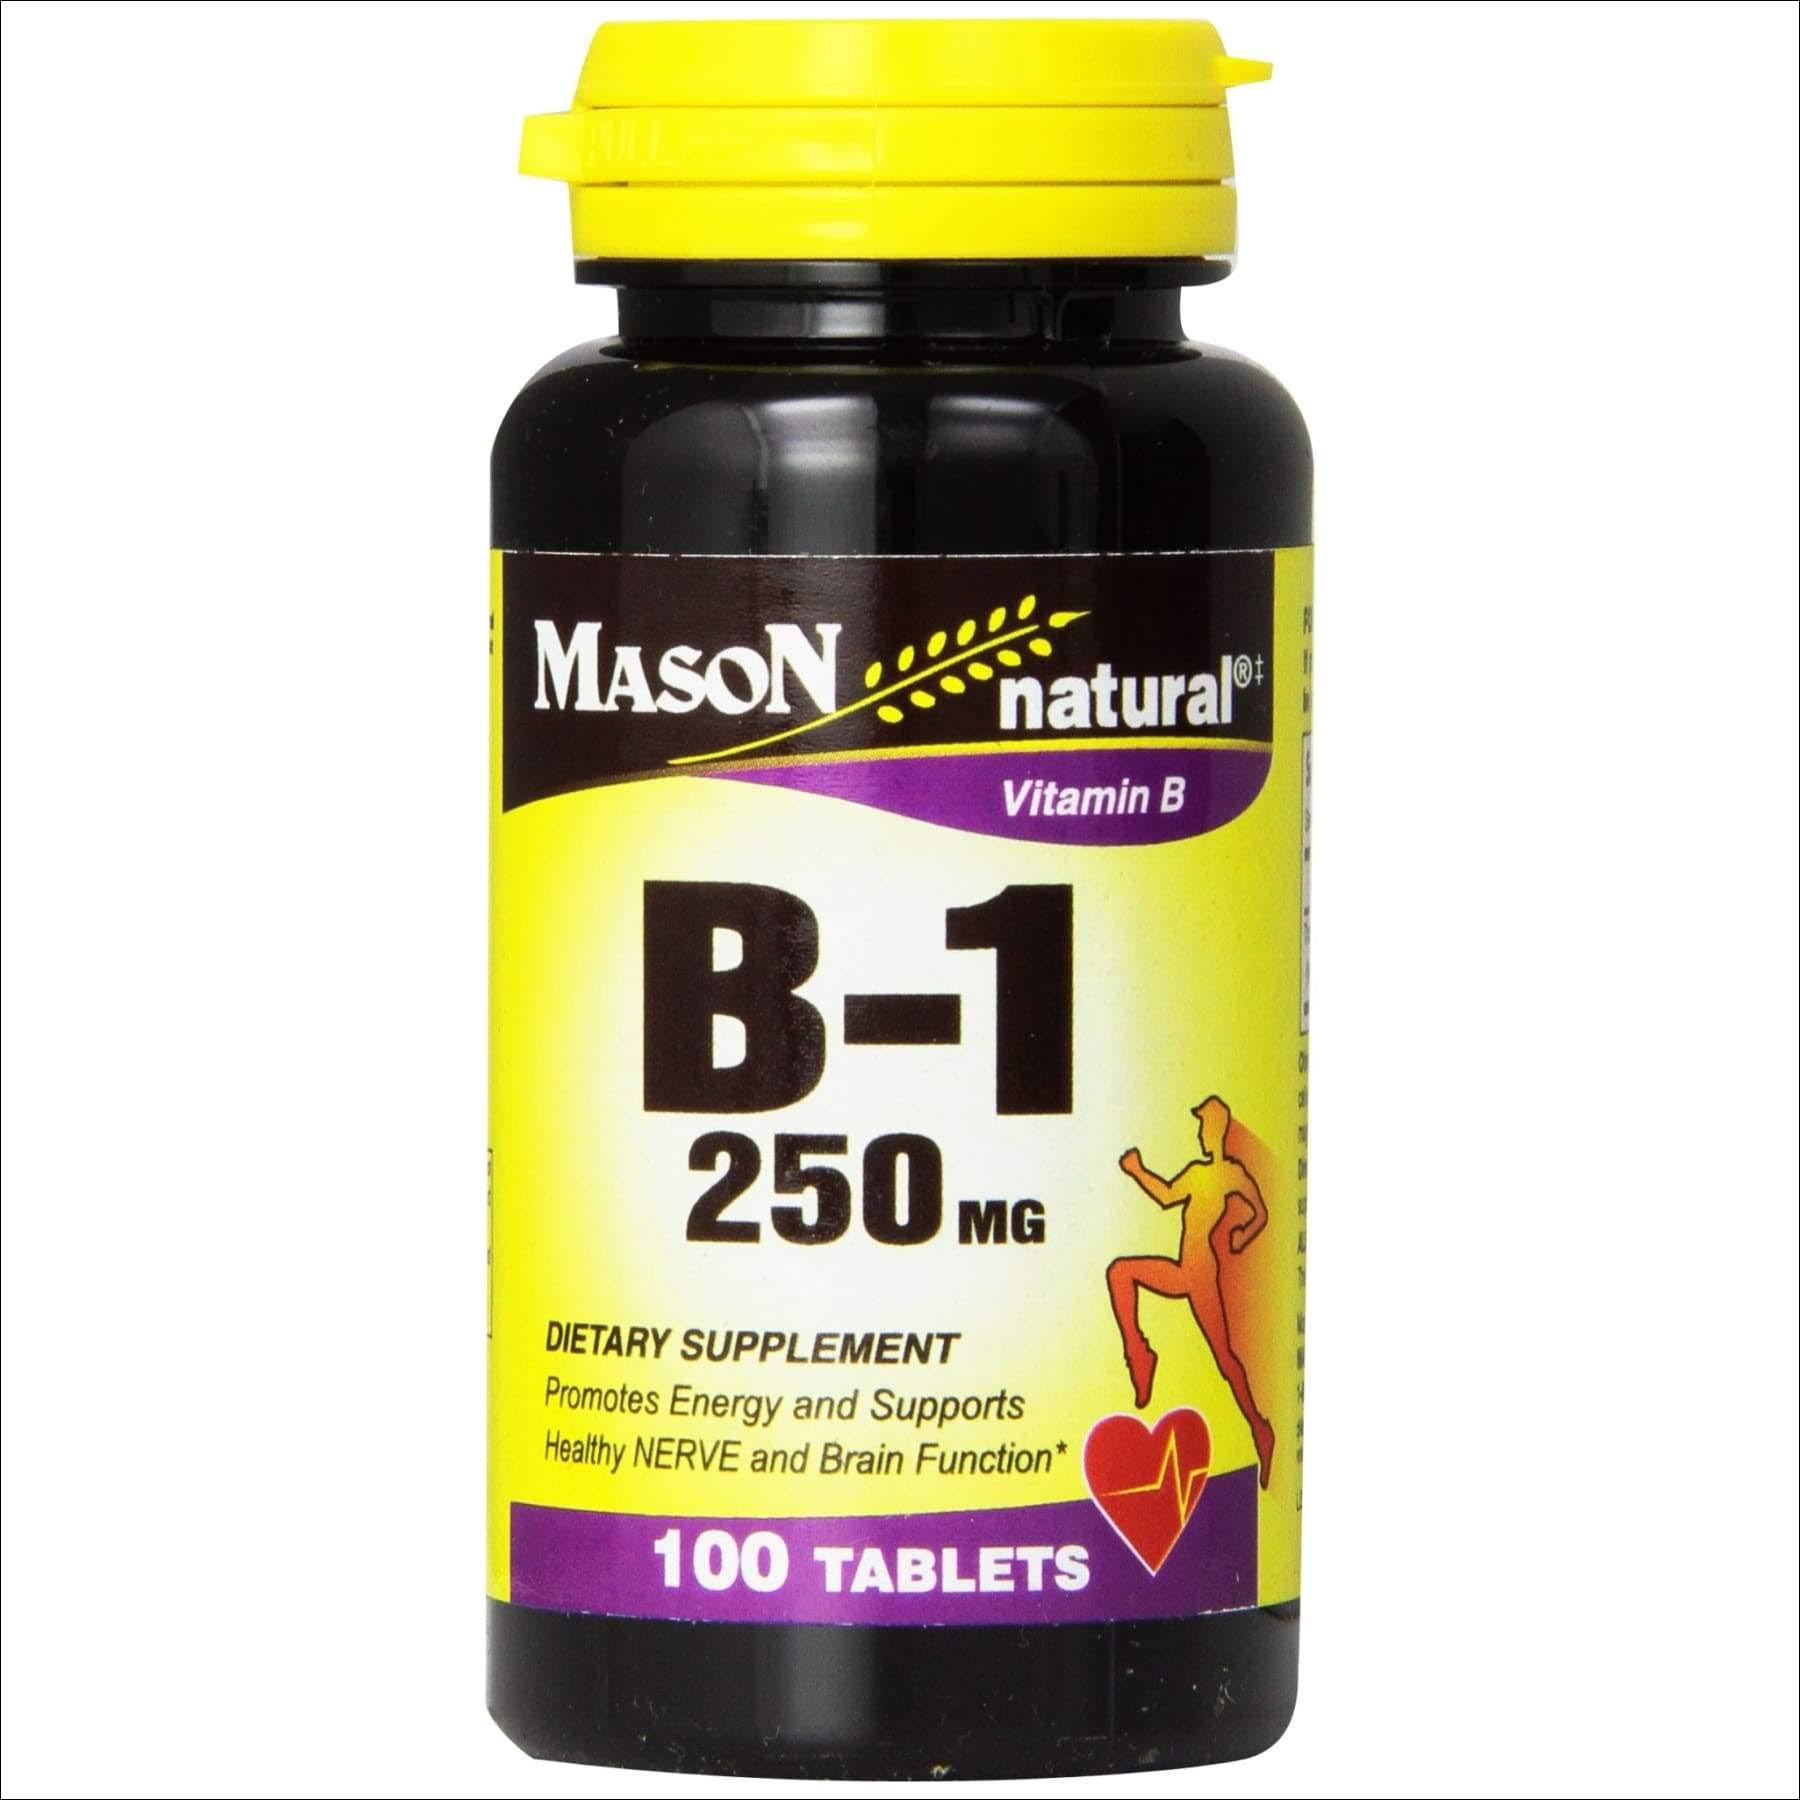 Mason Naturals Vitamin B1 Dietary Supplement - 100 Tablets